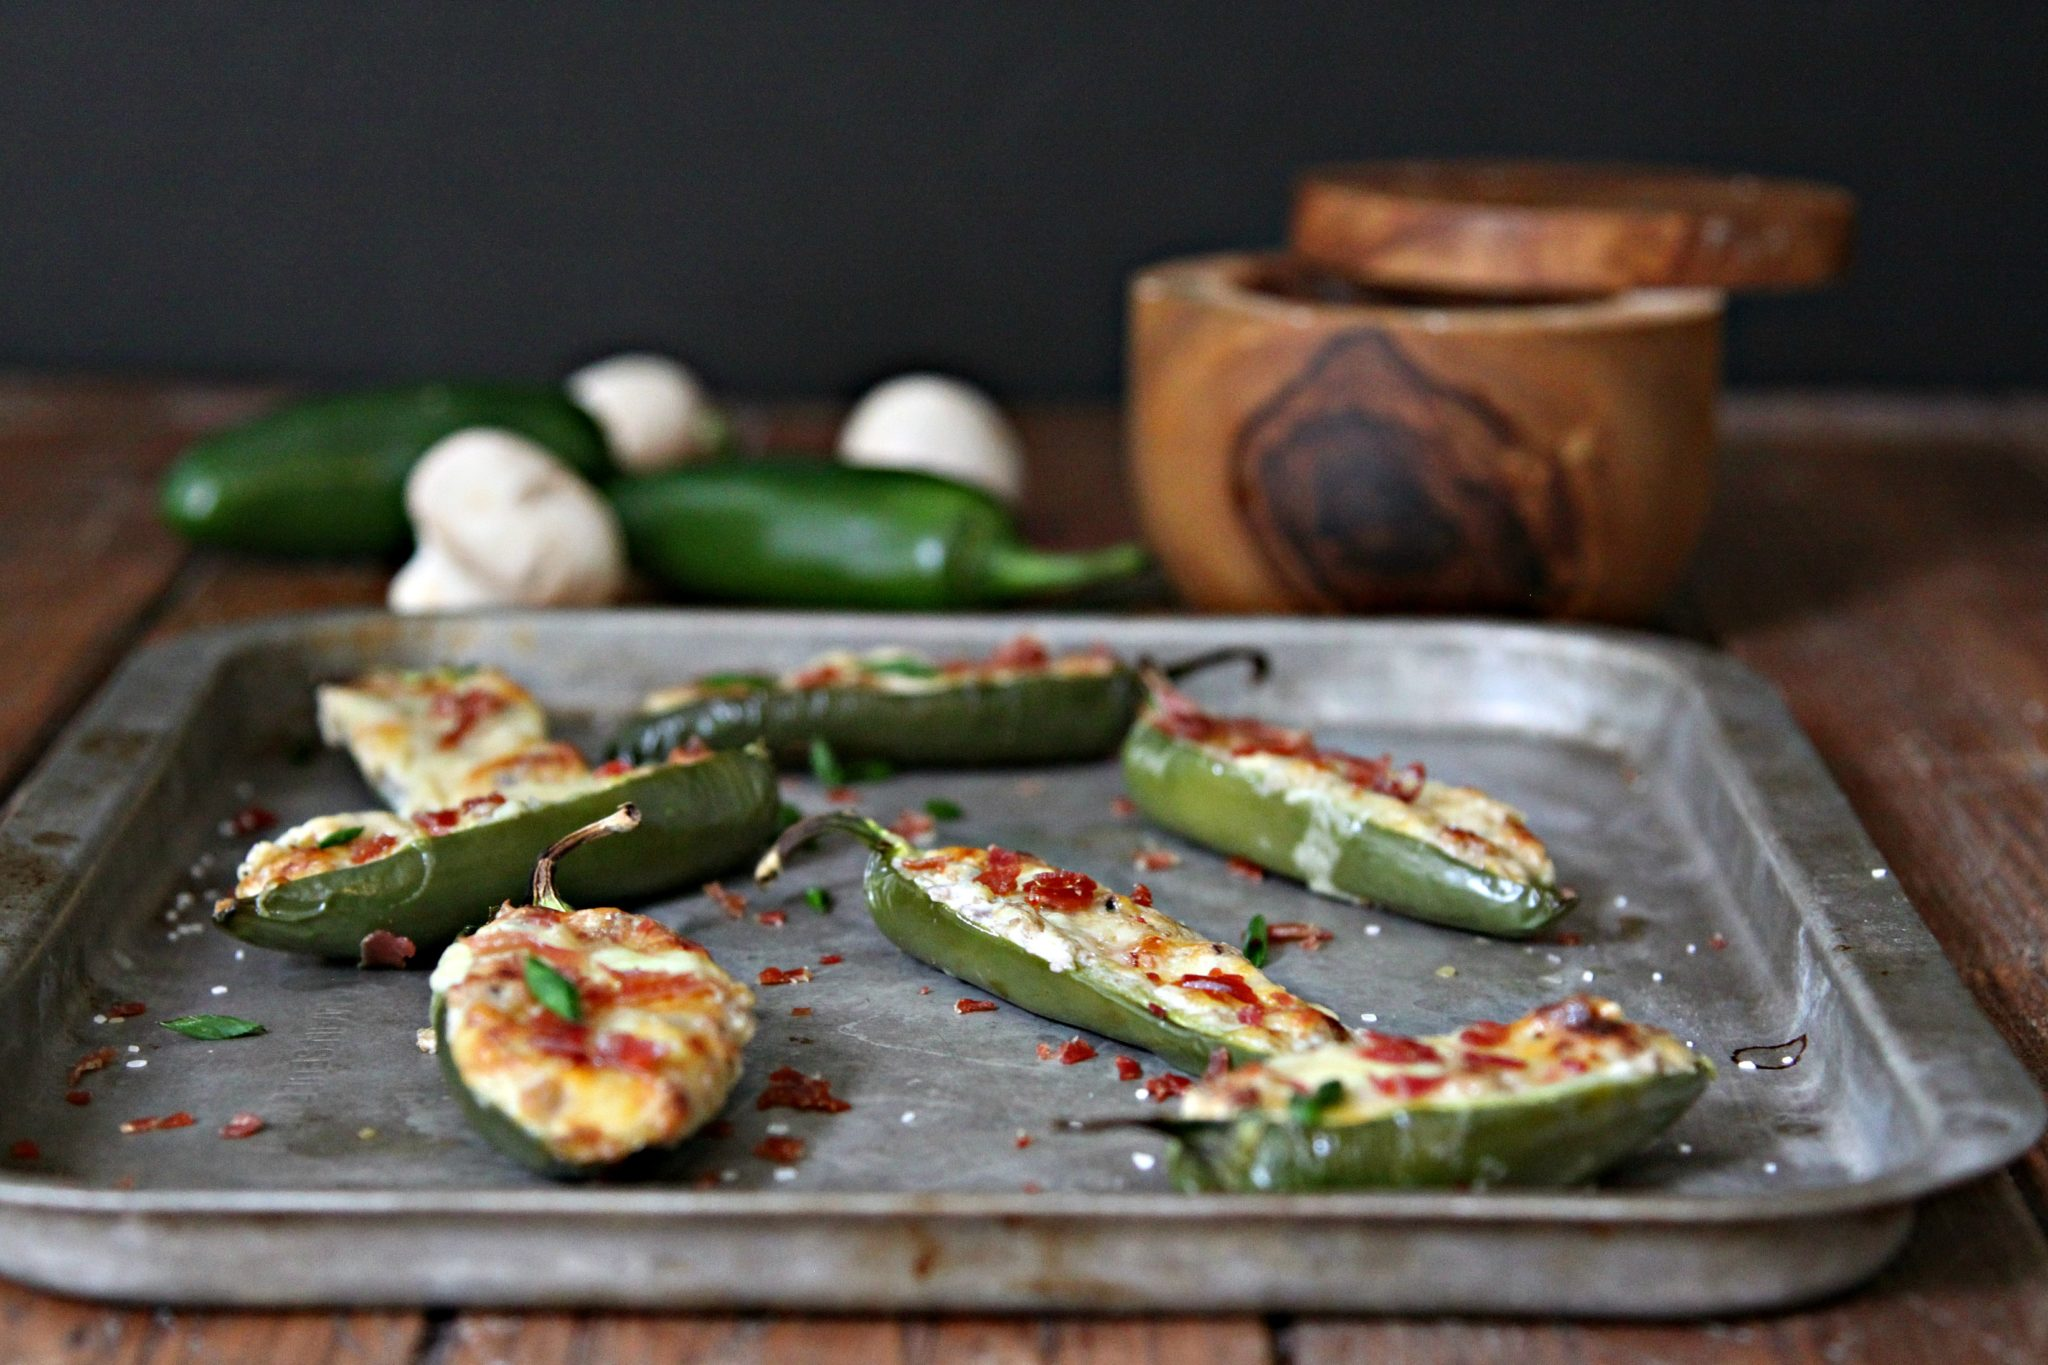 Turn up the heat with these Mushroom and Cheese Stuffed Jalapenos appetizers! #appetizer #jalapeno #stuffedjalapenos #fingerfoods #spicy